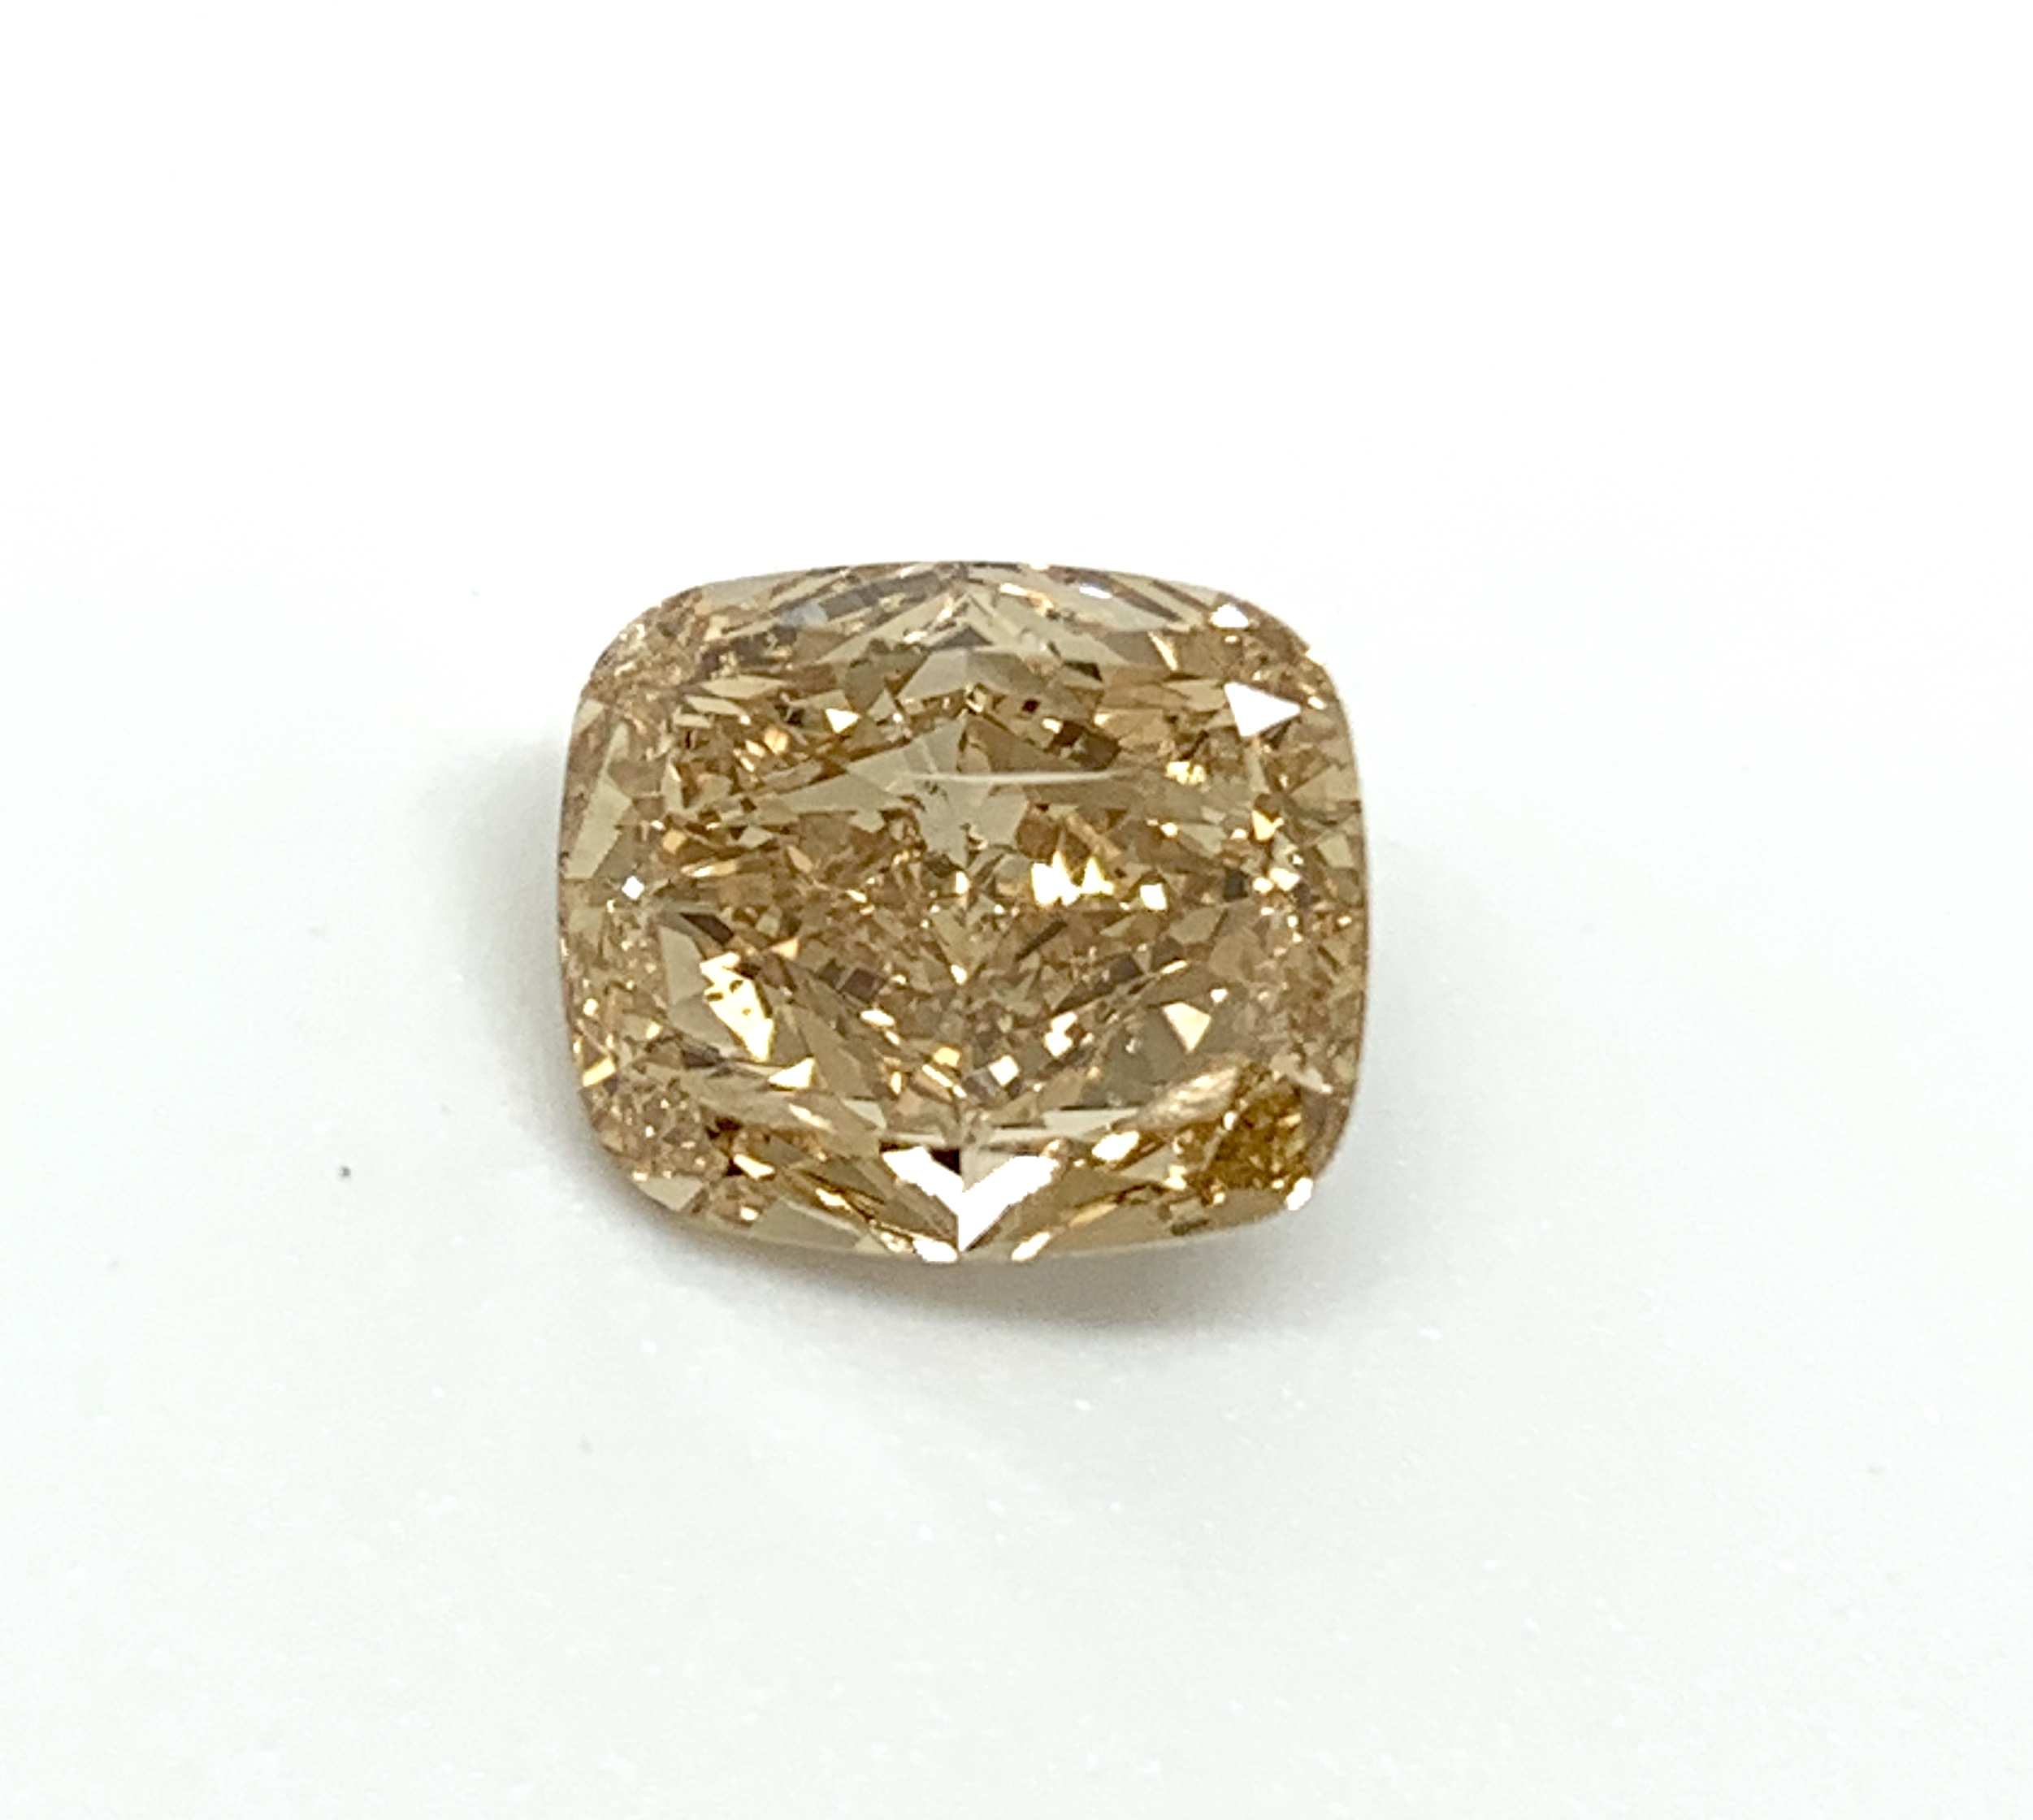 3 96ct Fancy Brown Yellow Cushion Cut Diamond